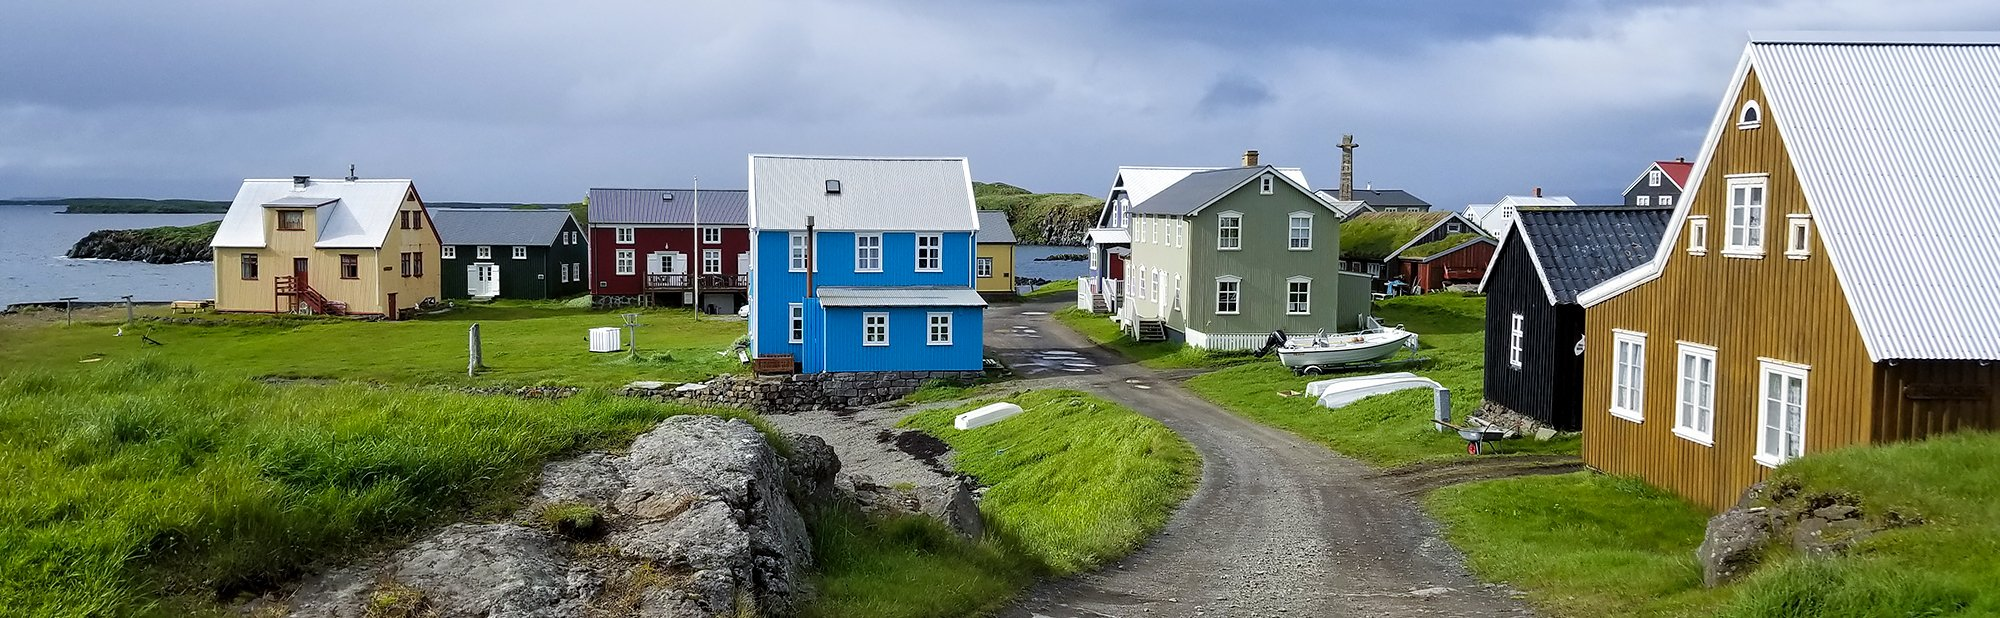 The small community on Flatey Island